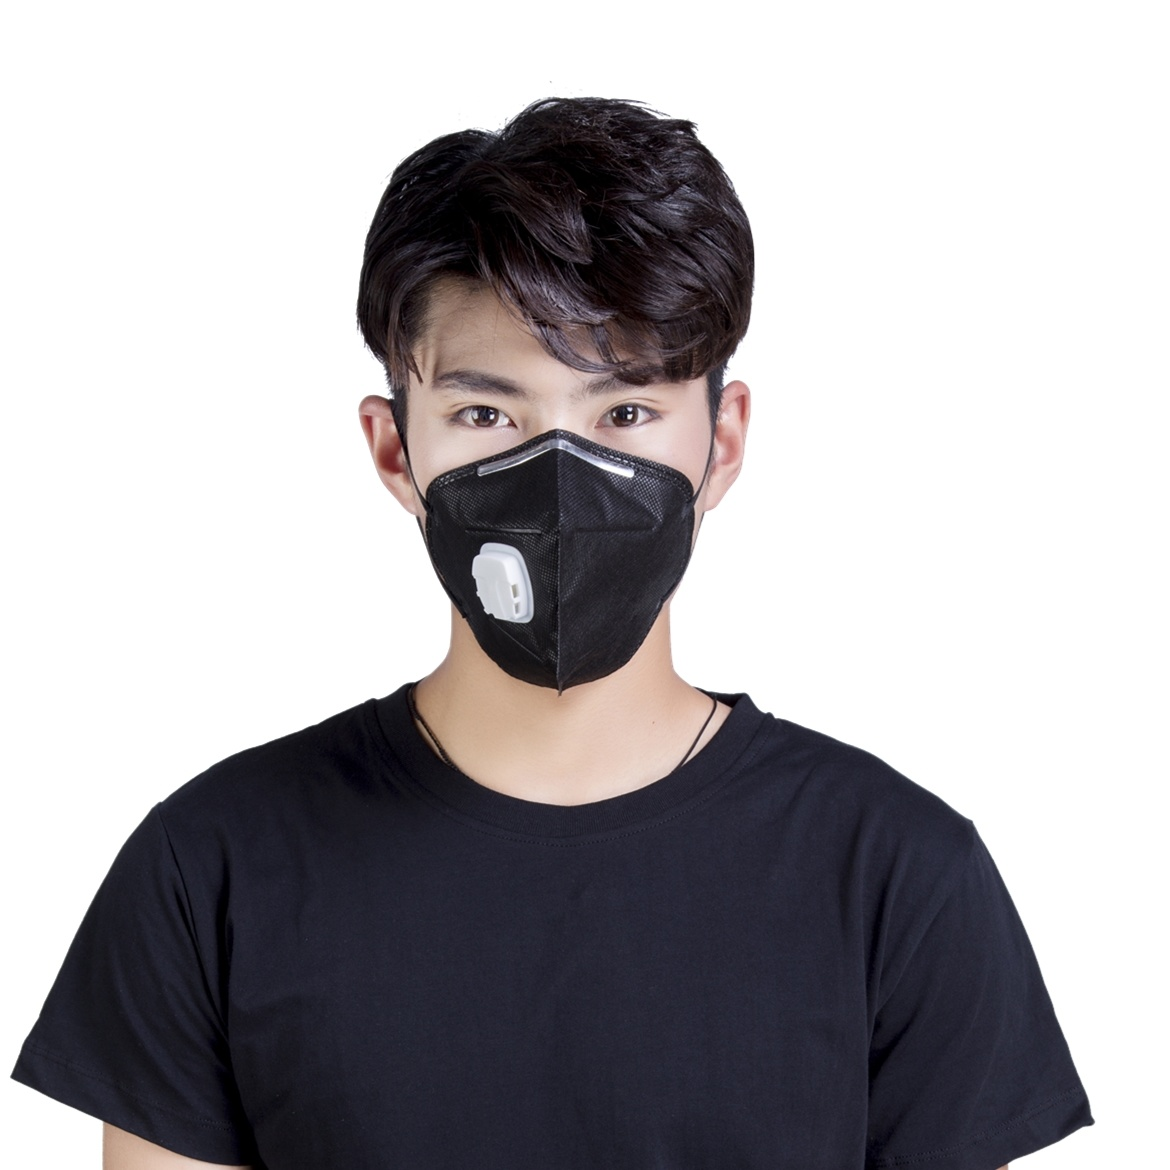 https://image.made-in-china.com/2f0j00nruGlDsgJQkc/Disposable-Safety-N95-Dust-Mask-Face-Mask.jpg